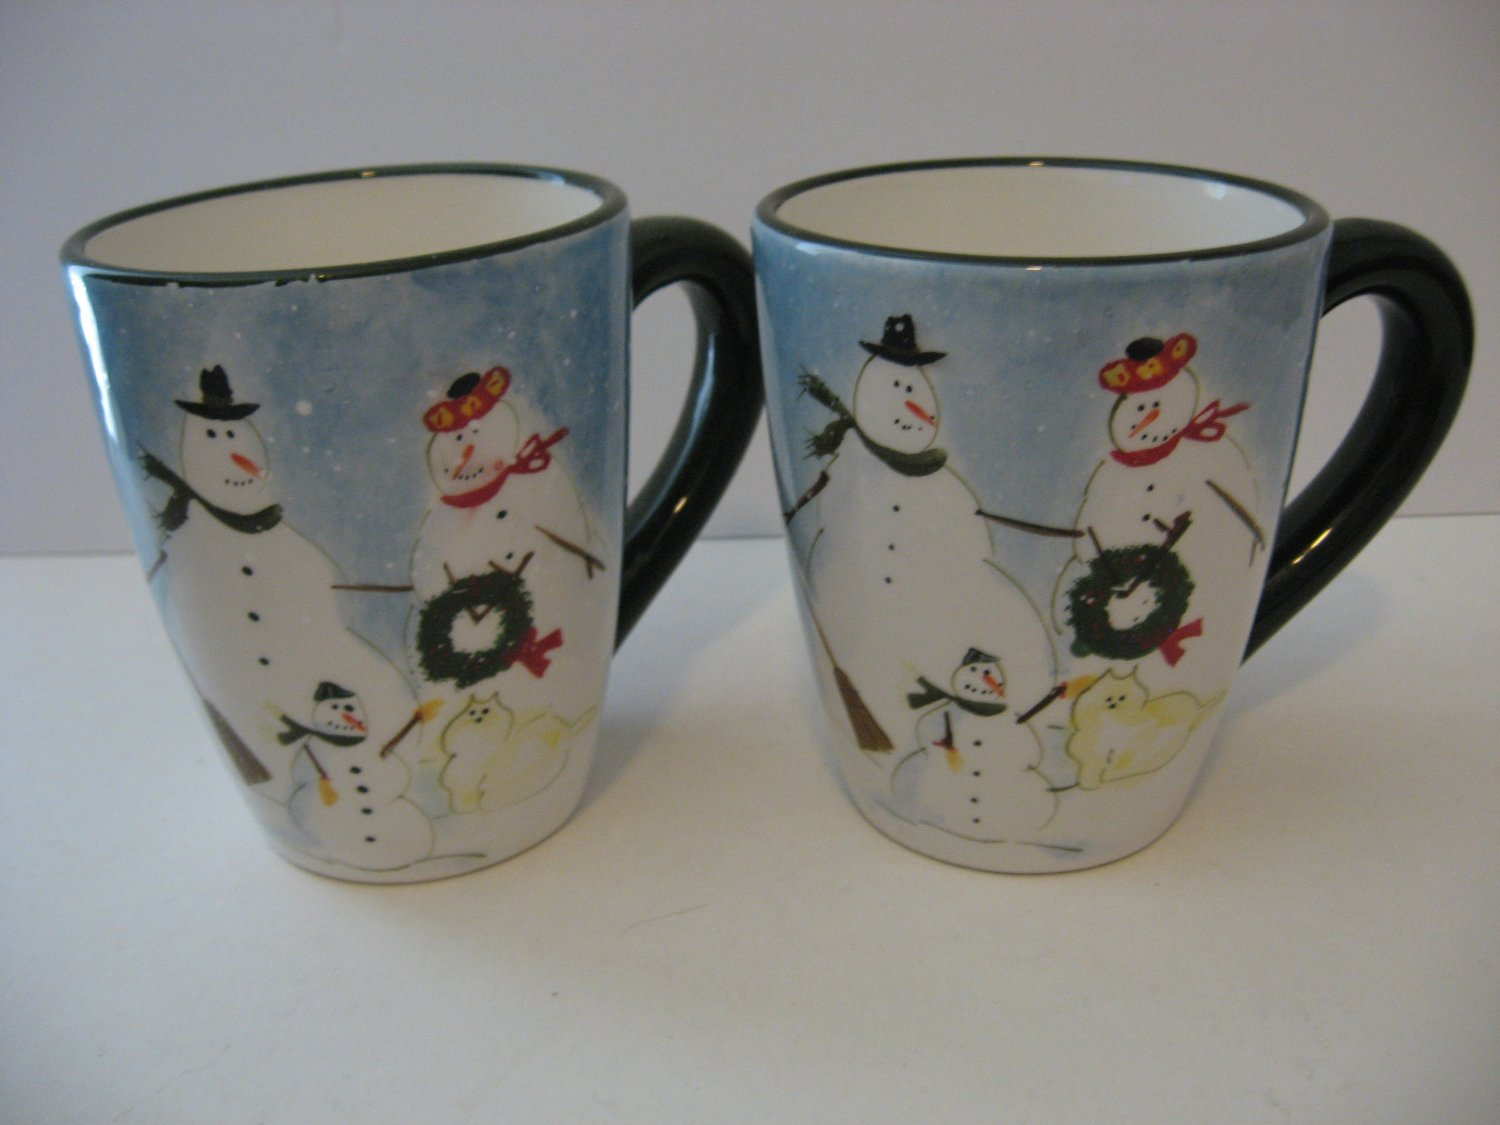 Large Coffee Mug Sets Snow Family Design Large Coffee Mugs Set Of 2